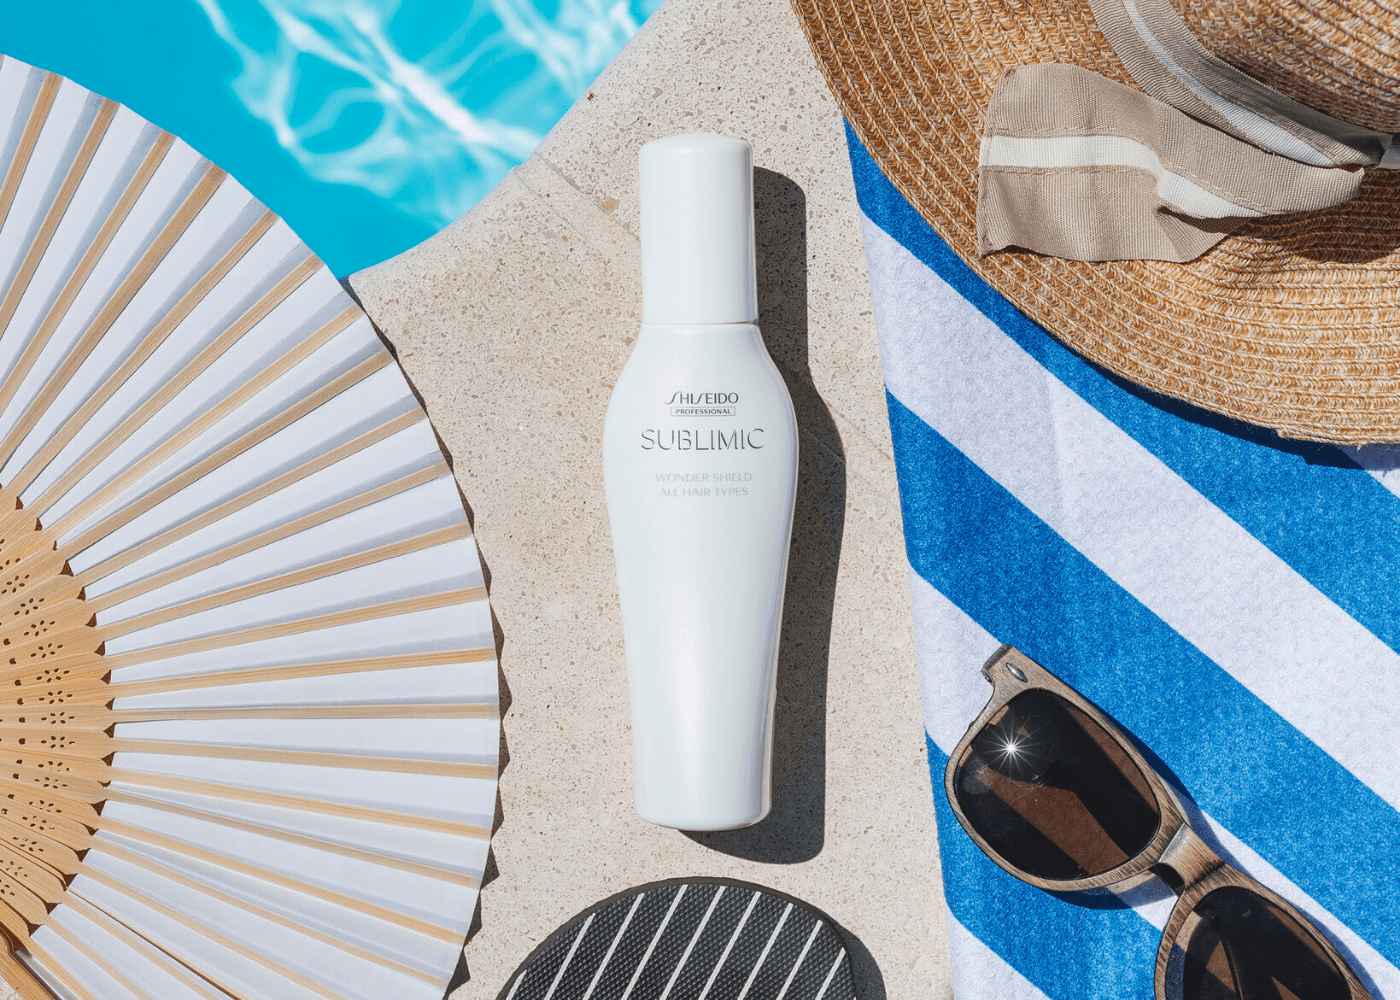 Best beauty buys in June: A highly-rated clay mask, spirit-lifting room mists and a cushion foundation with SPF protection